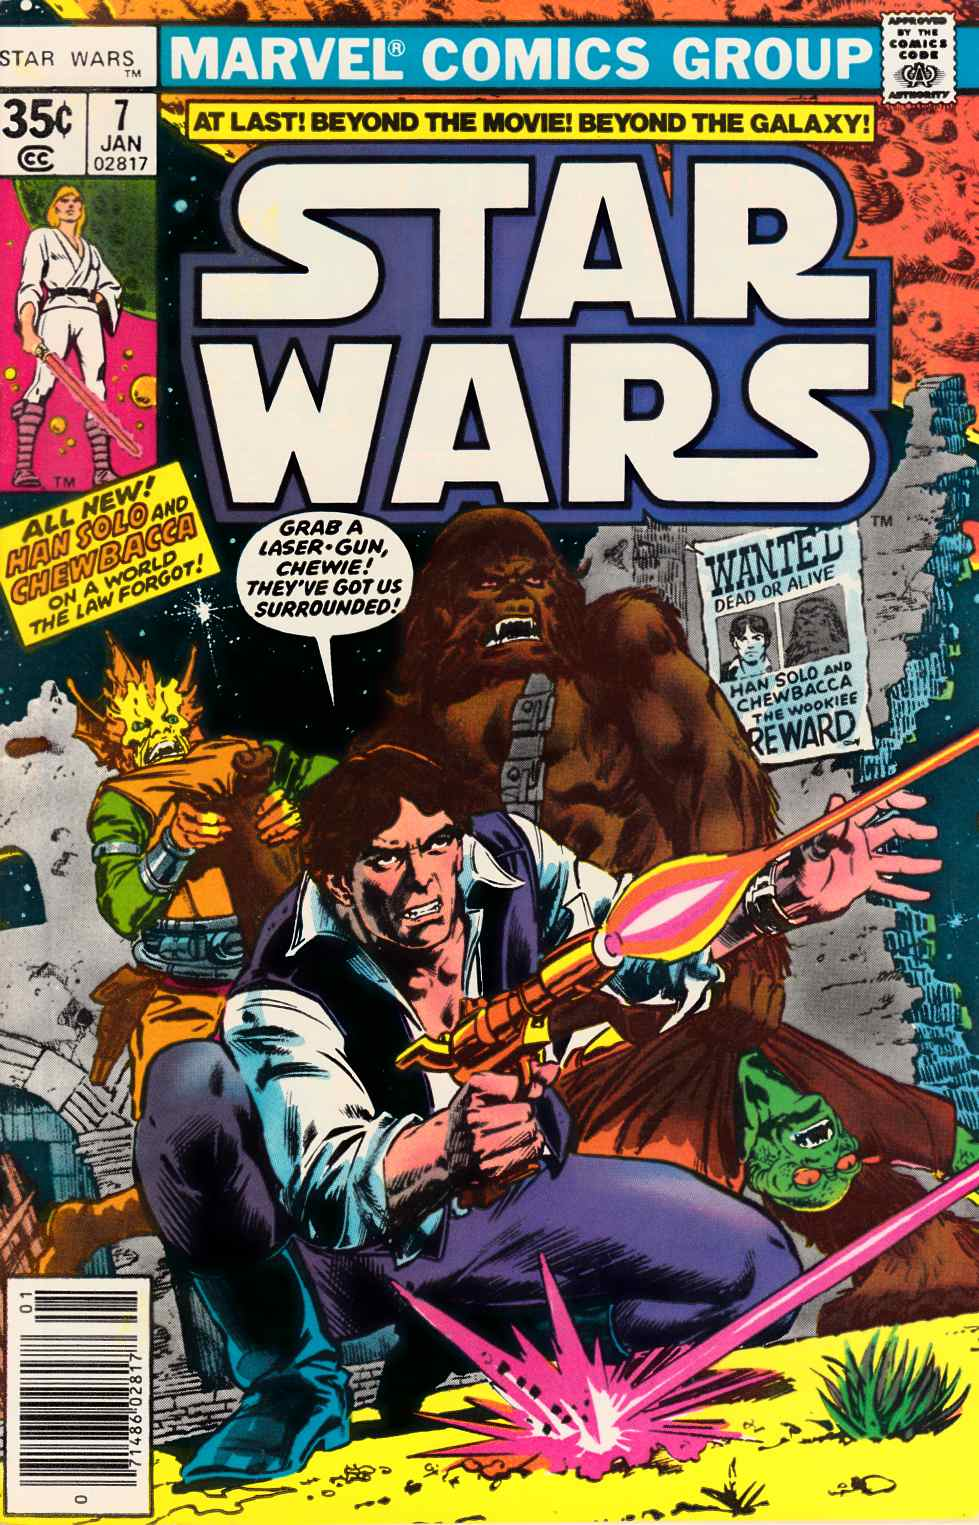 Star Wars #7 [Marvel Comic] THUMBNAIL